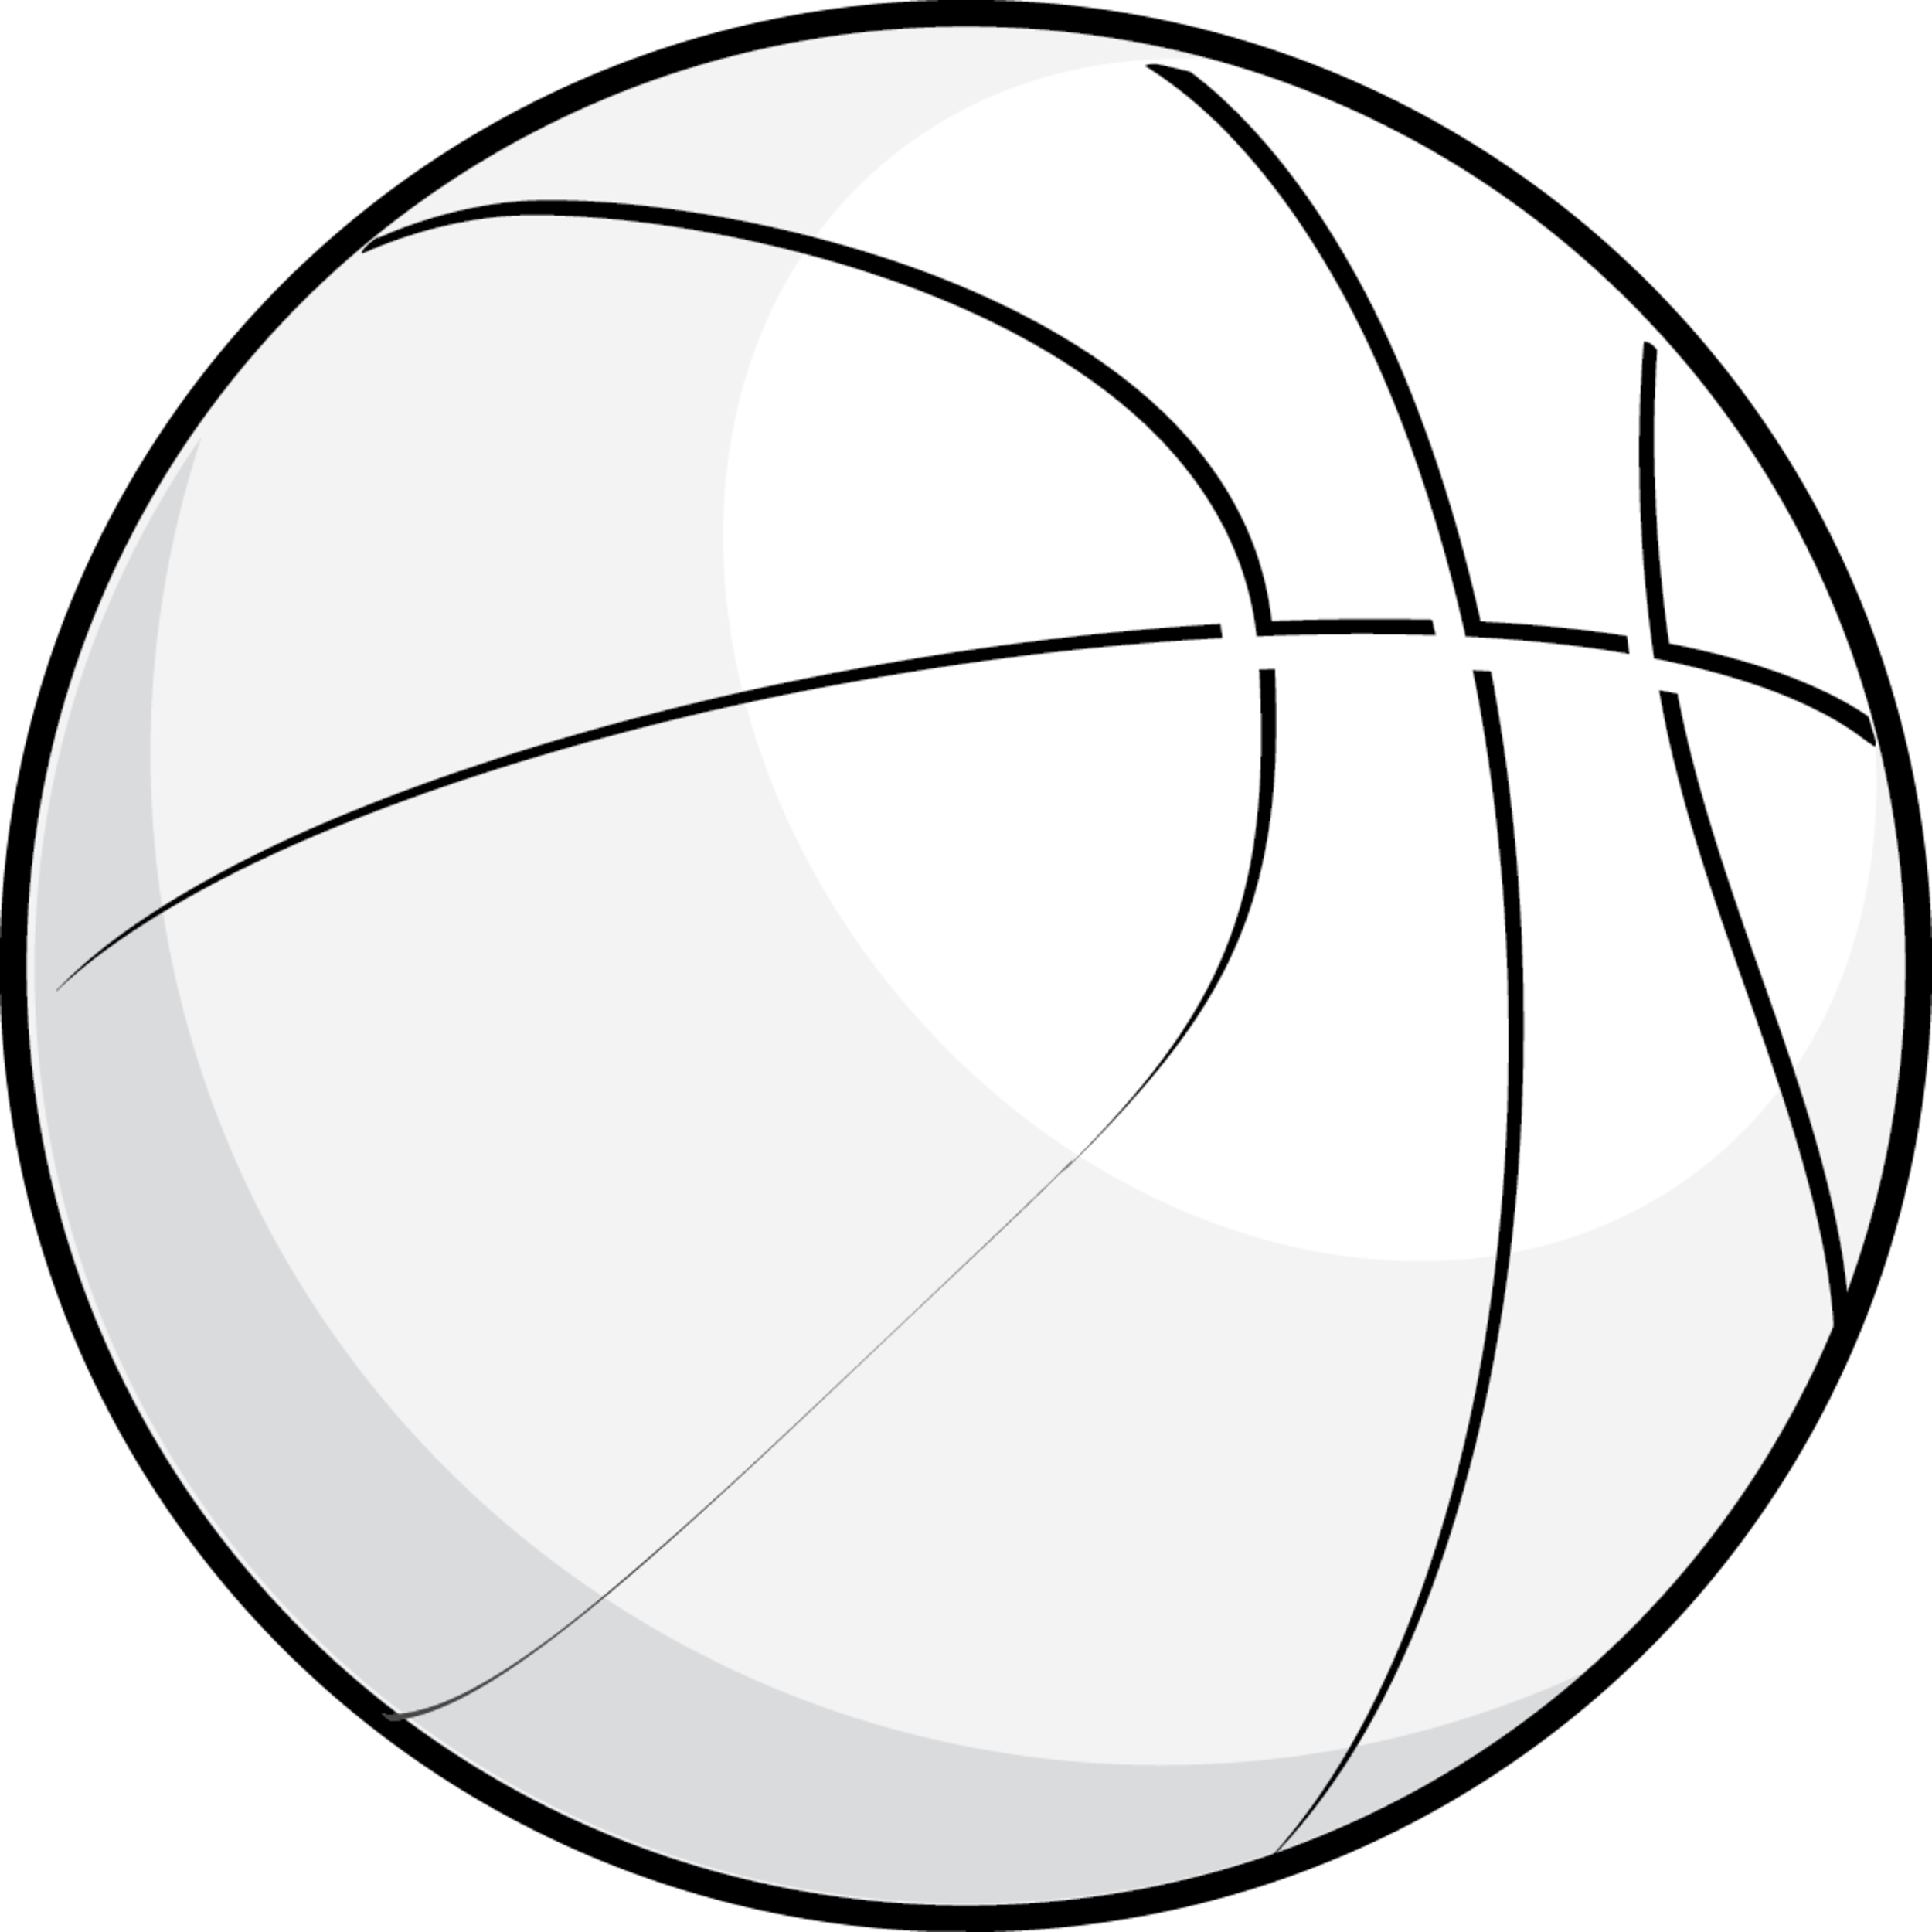 2500x2500 Playing Basketball Clipart Image